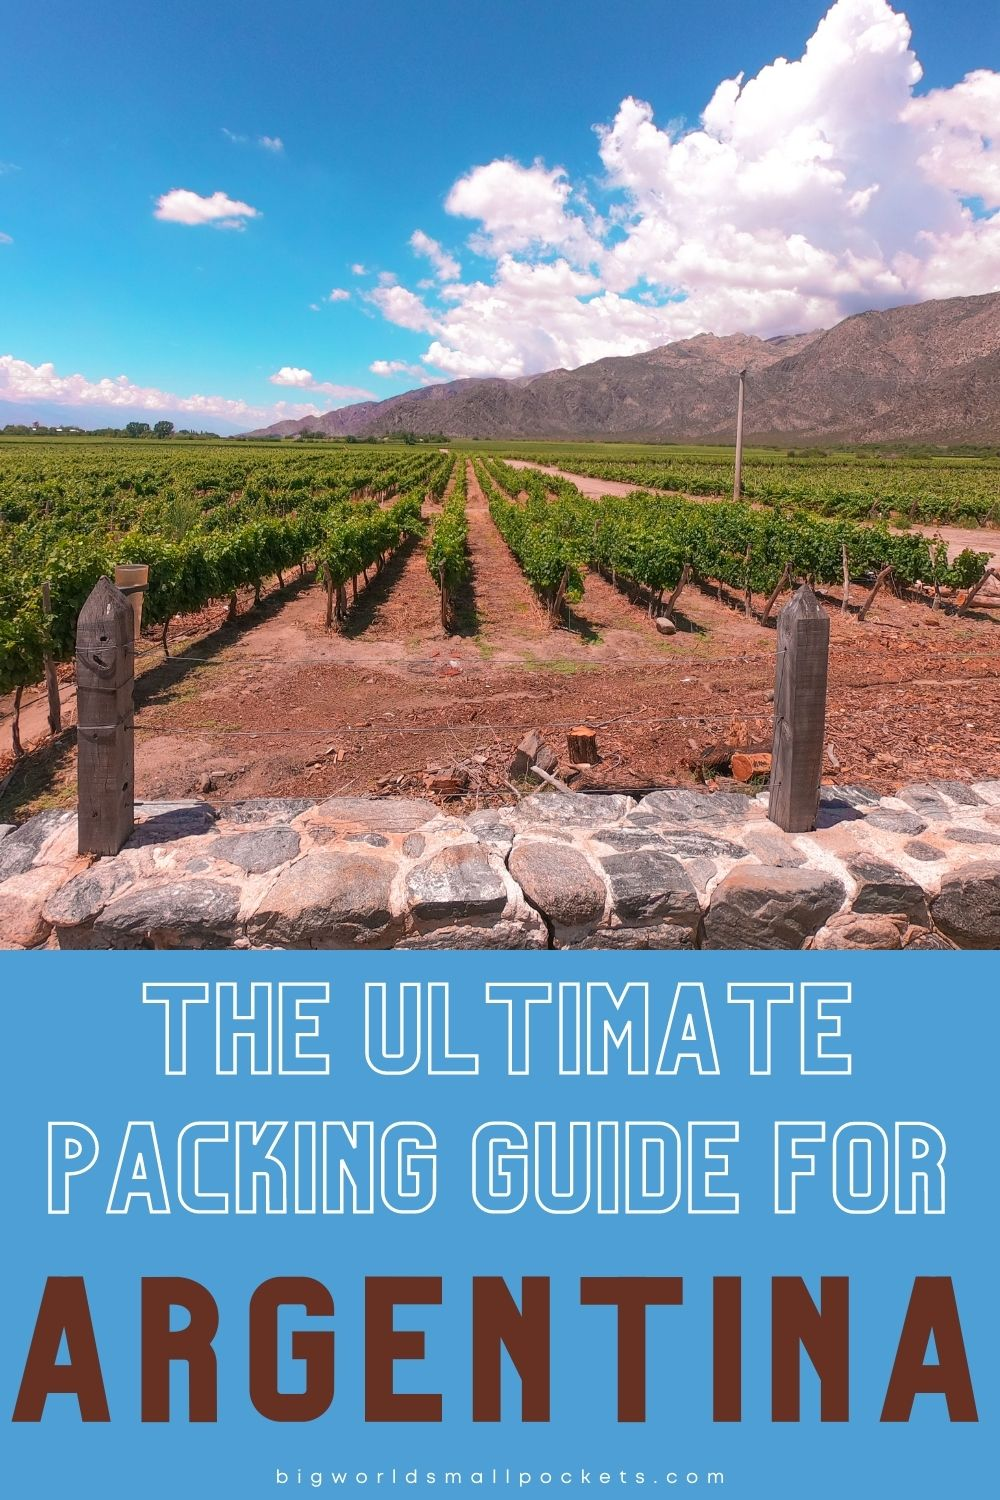 The Ultimate Packing Guide for Argentina